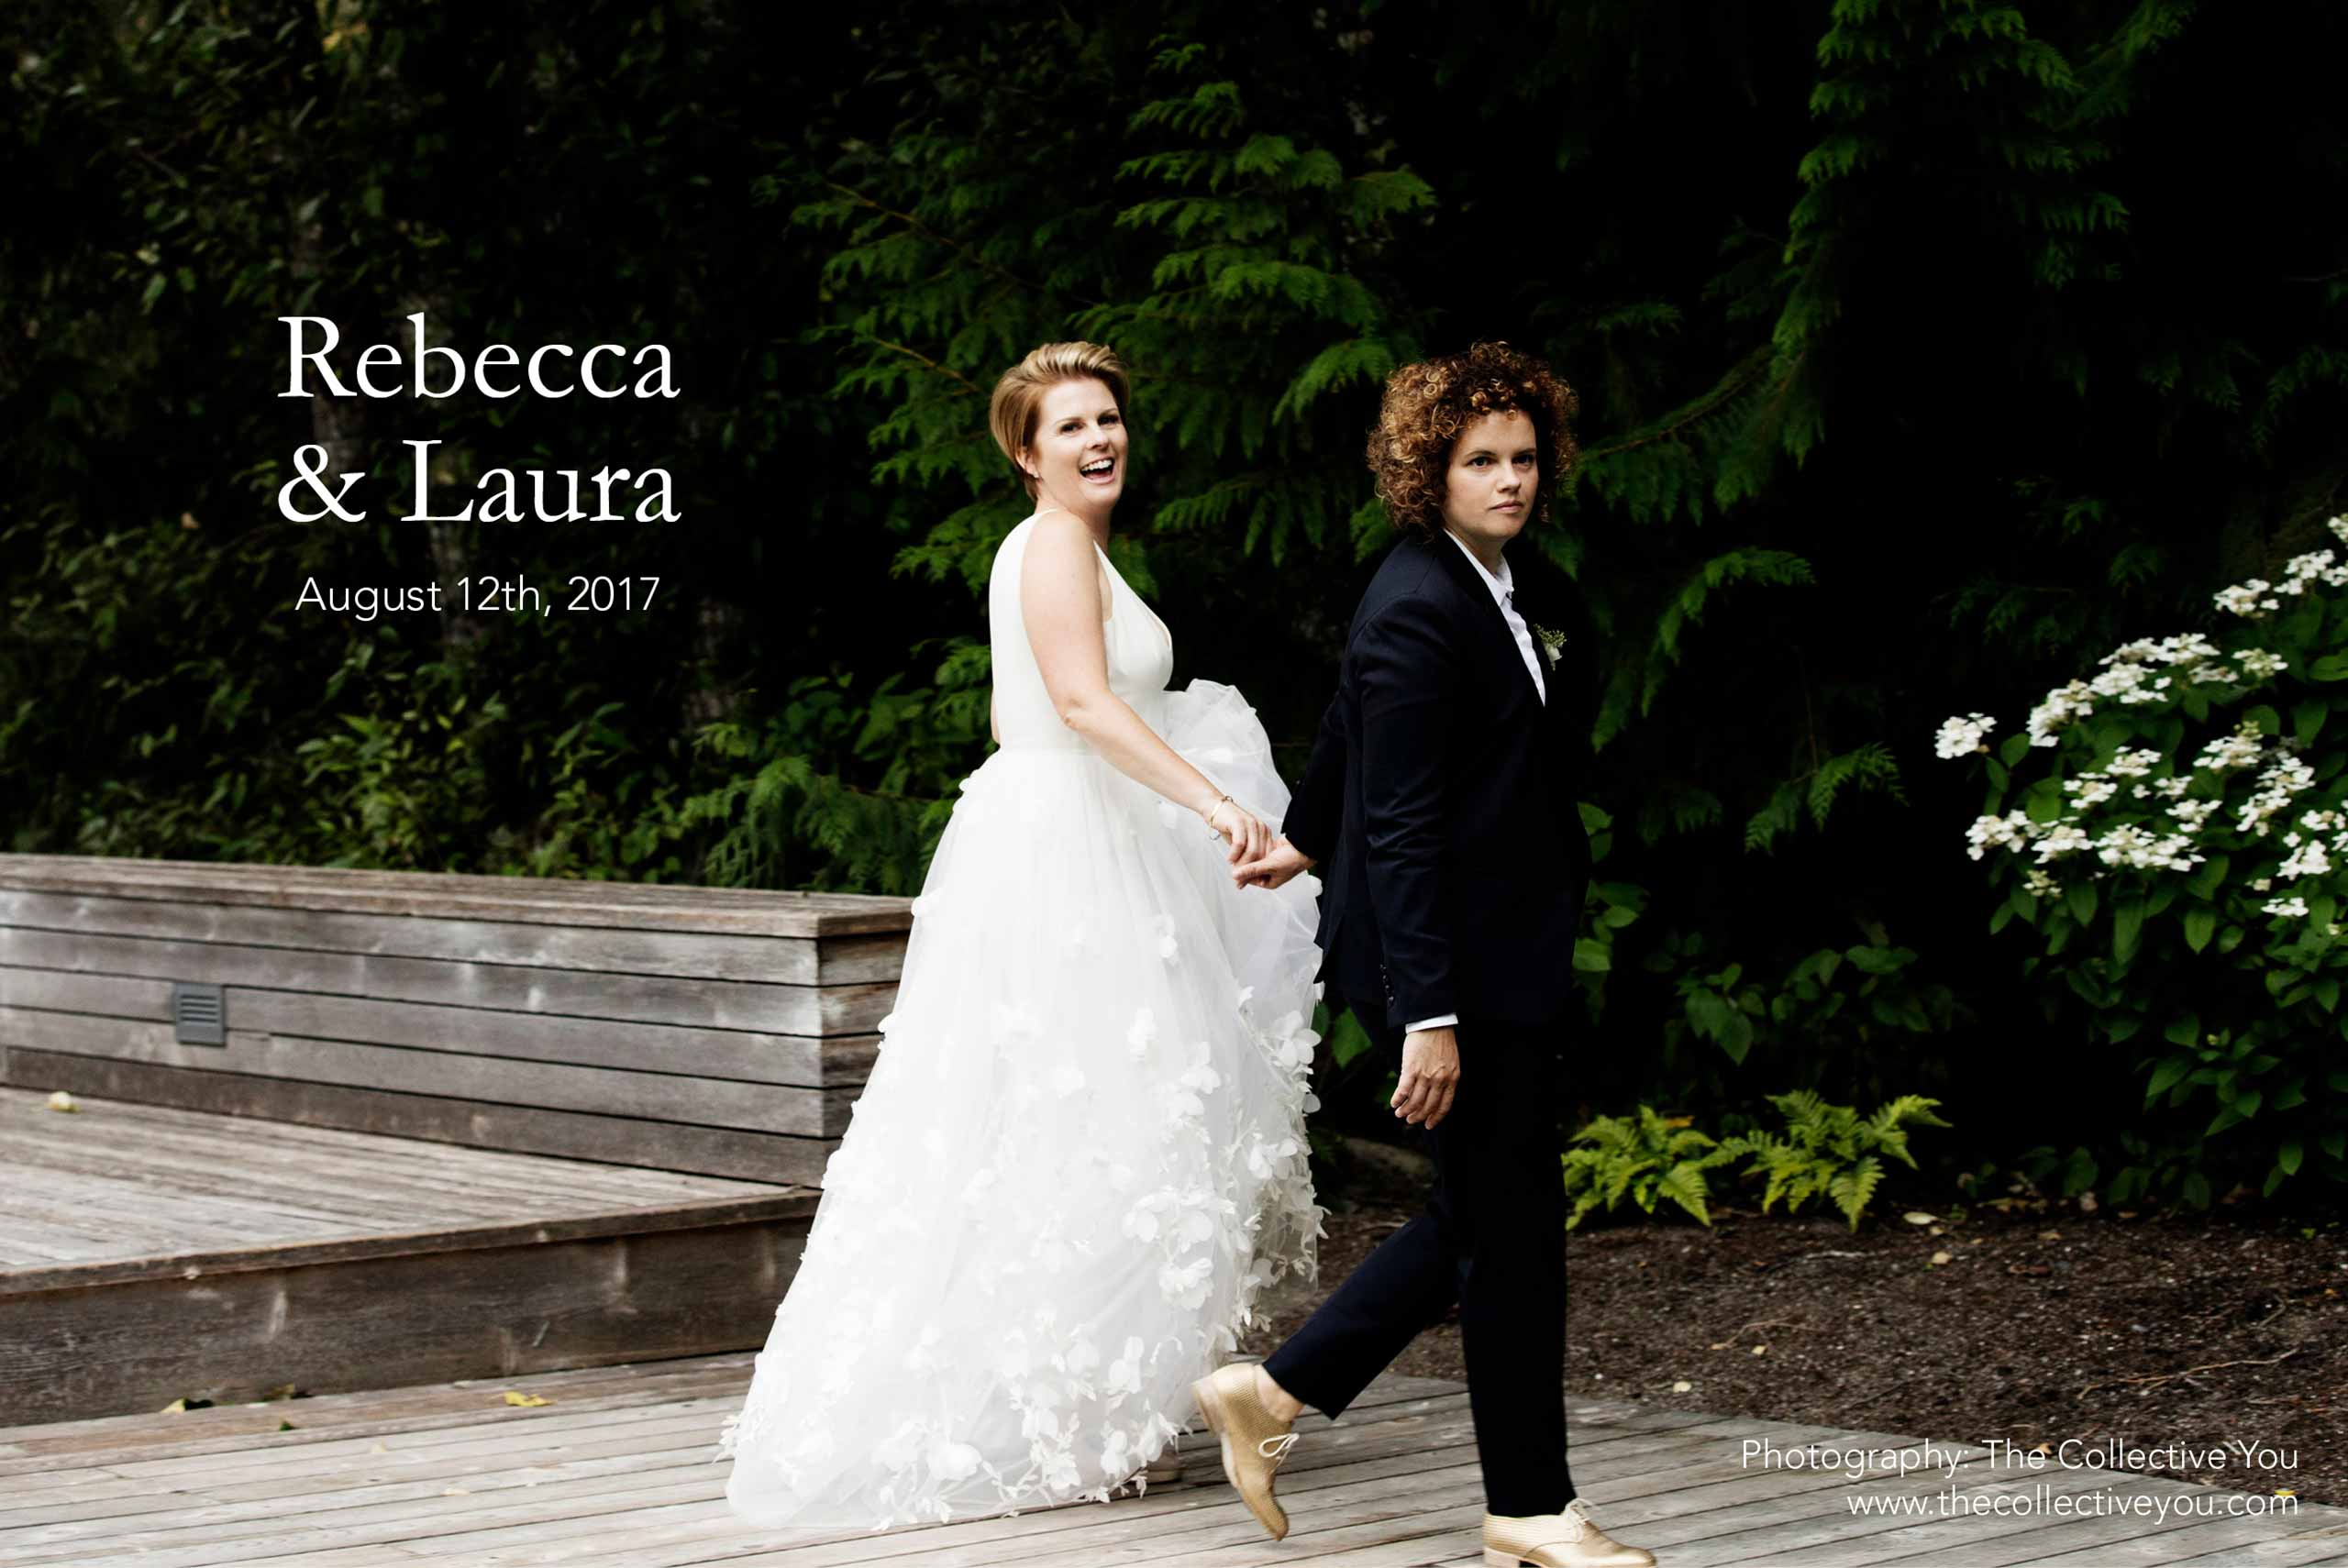 Rebecca and Laura's Wedding